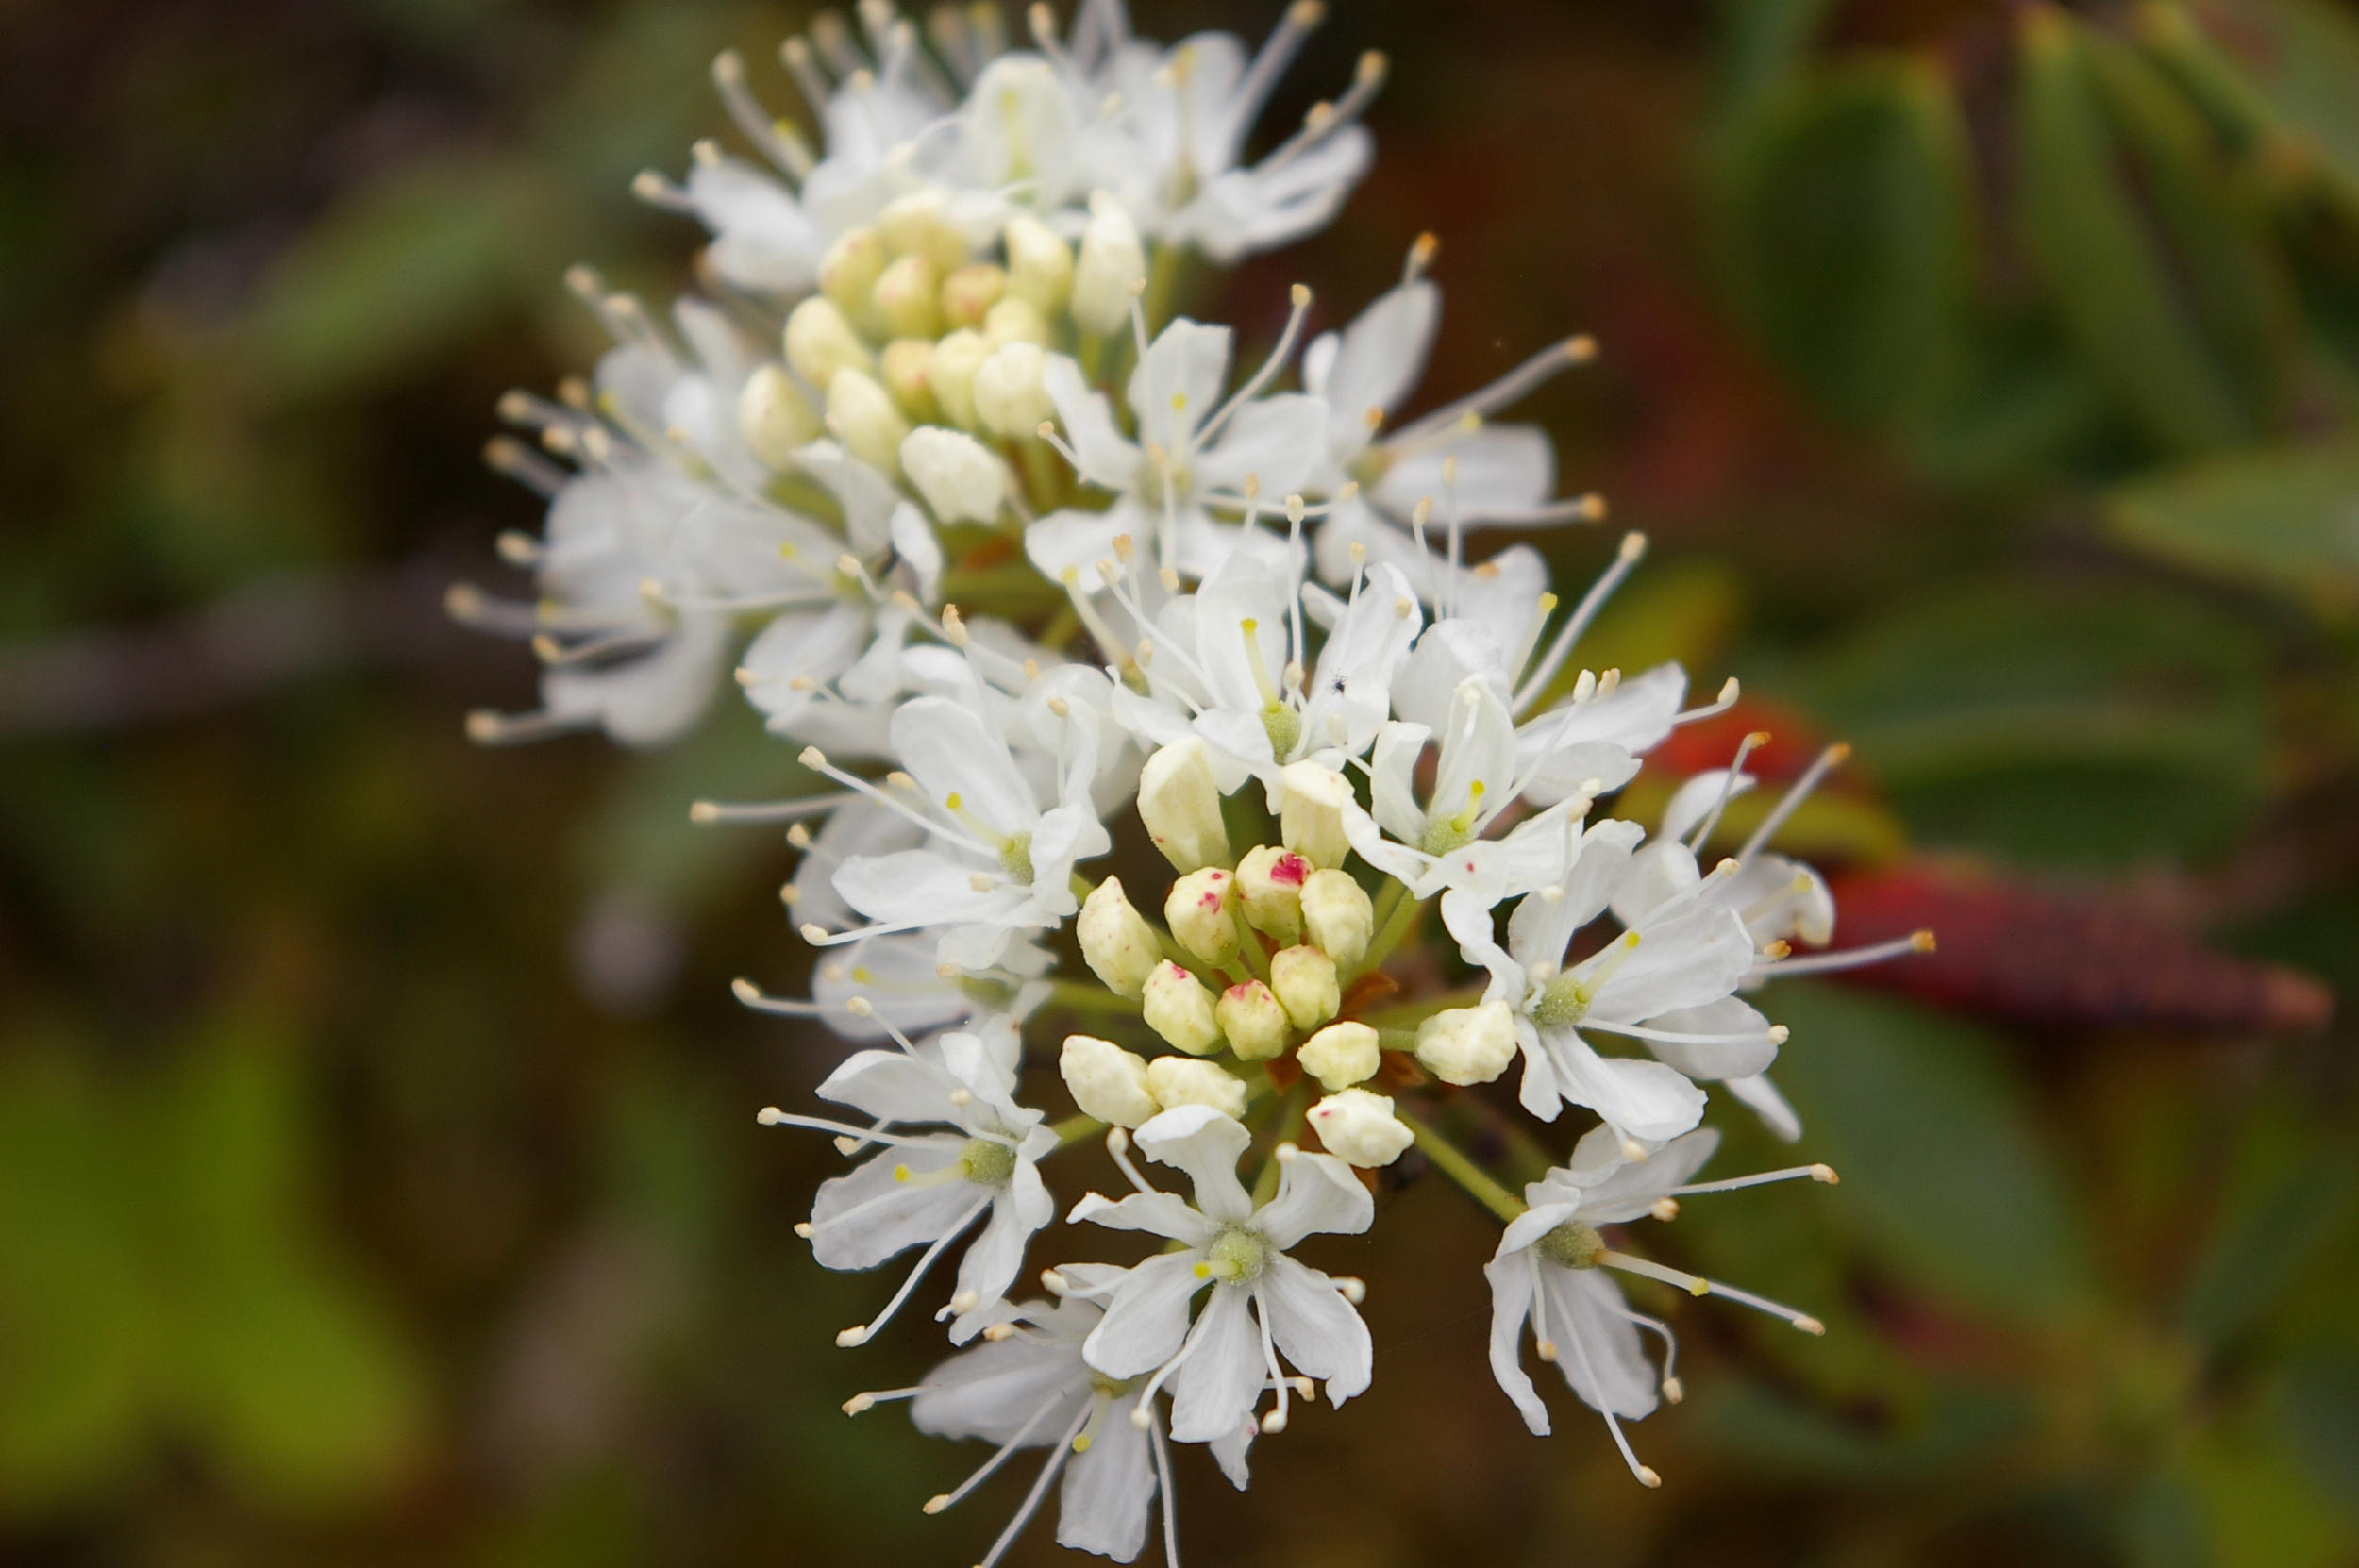 Close-up of Labrador tea flowers (photo credit Lisa McBride Photography)